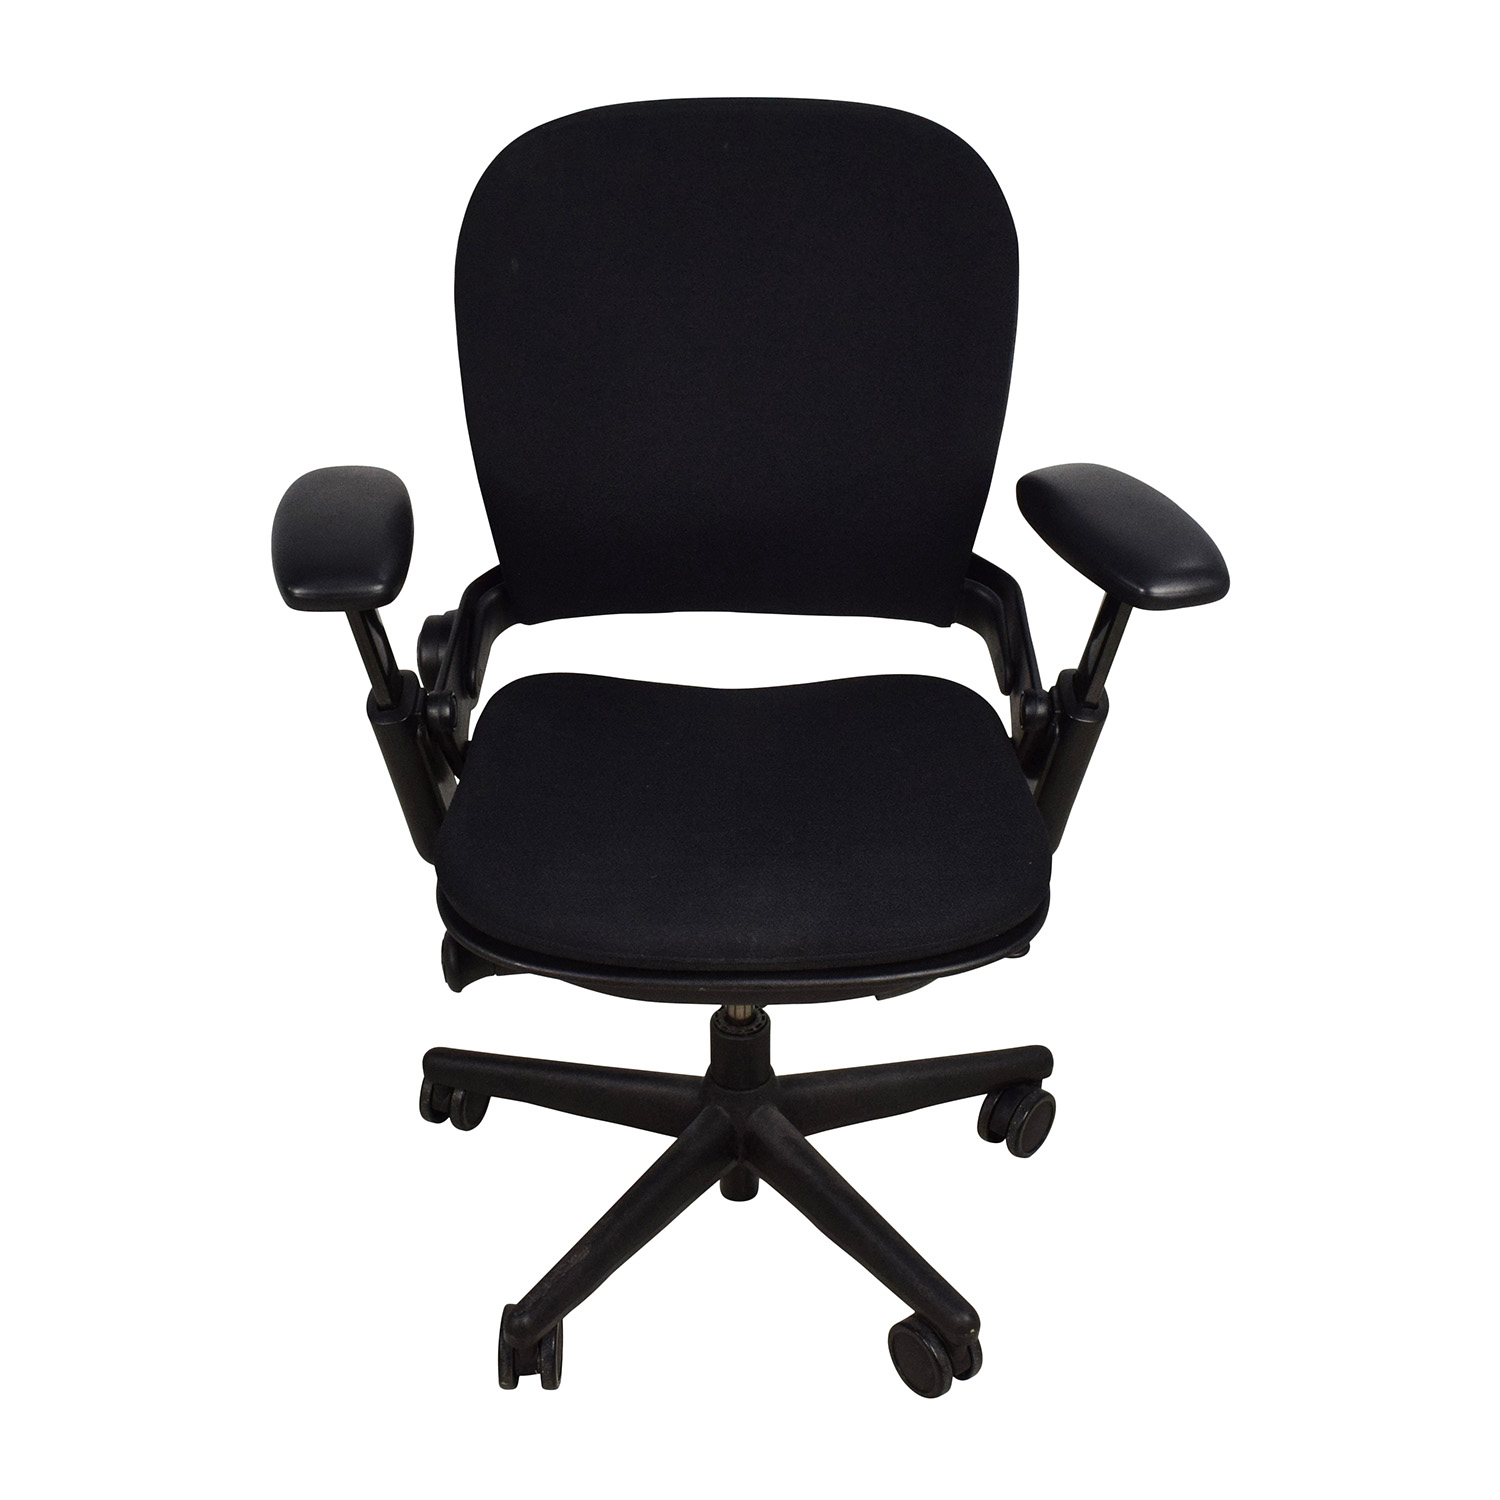 Adjustable Black Office Desk Chair